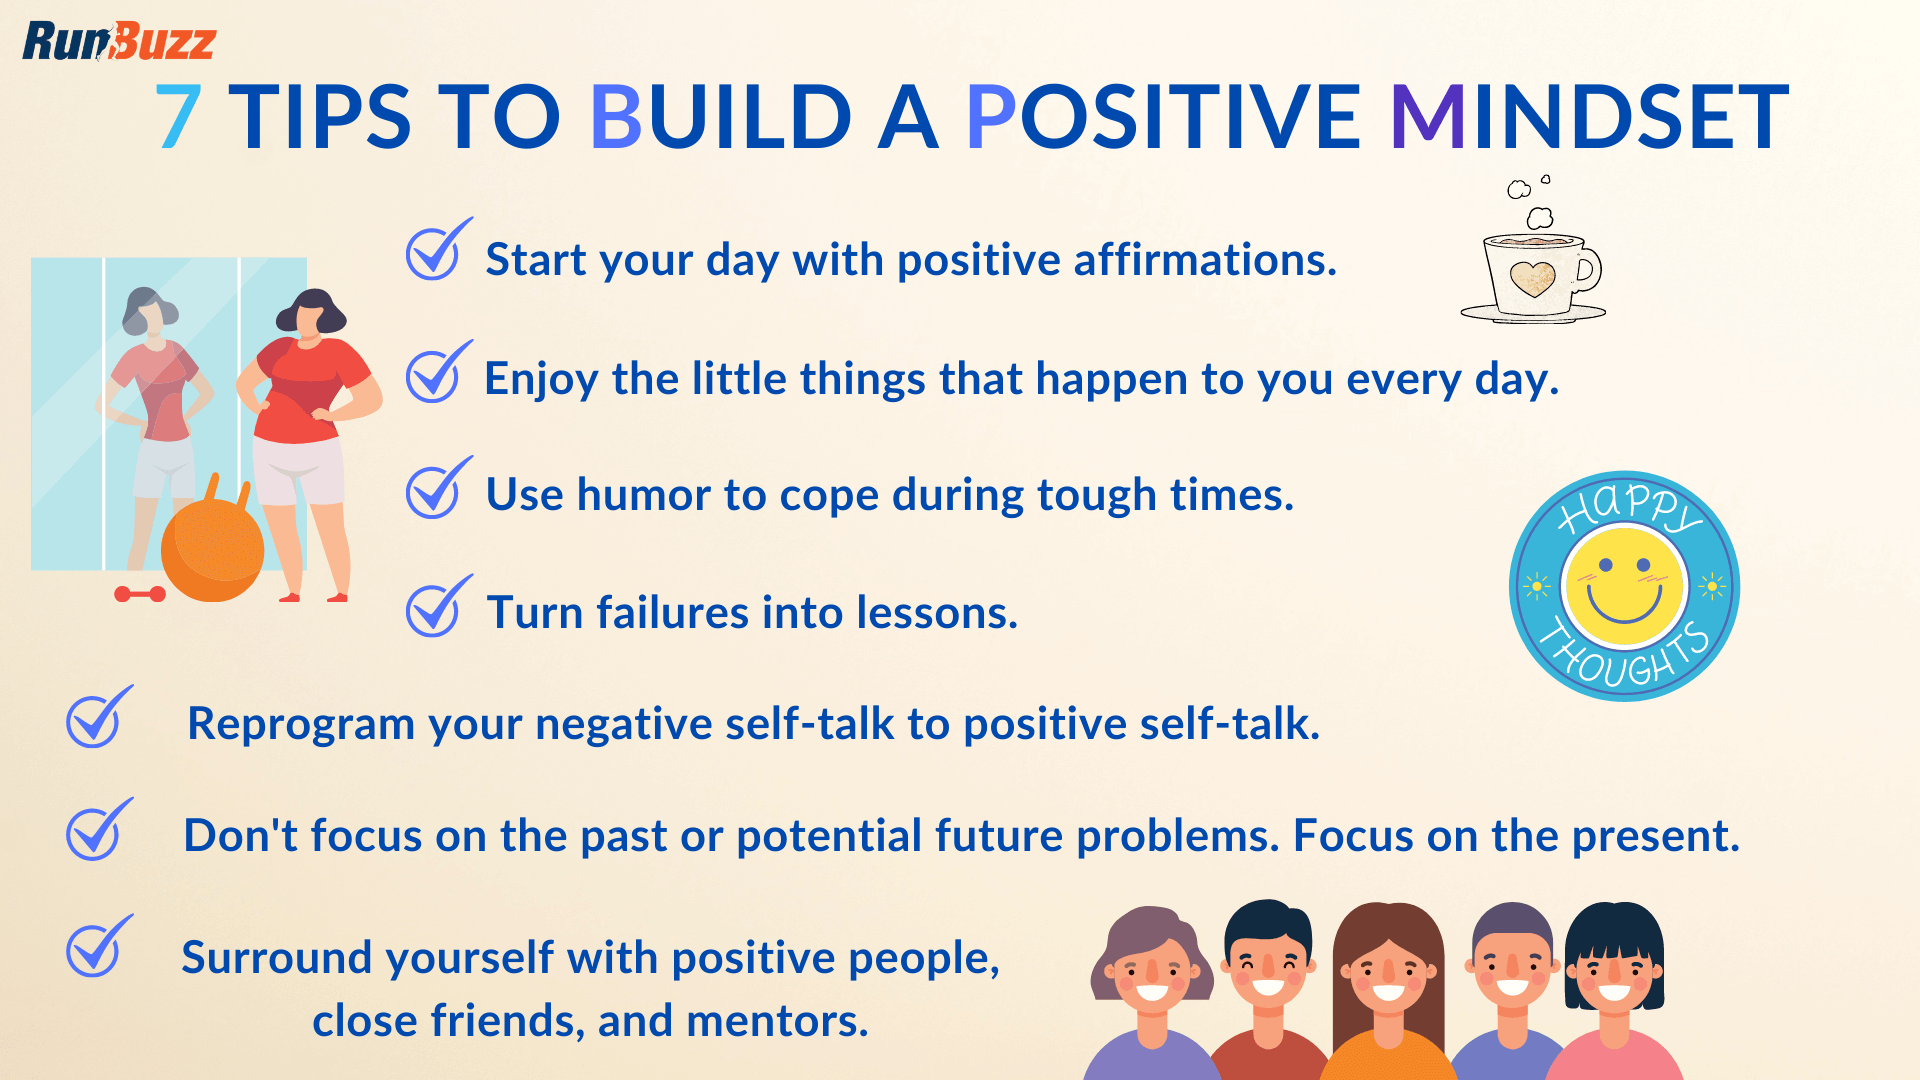 7-tips-to-build-a-positive-mindset